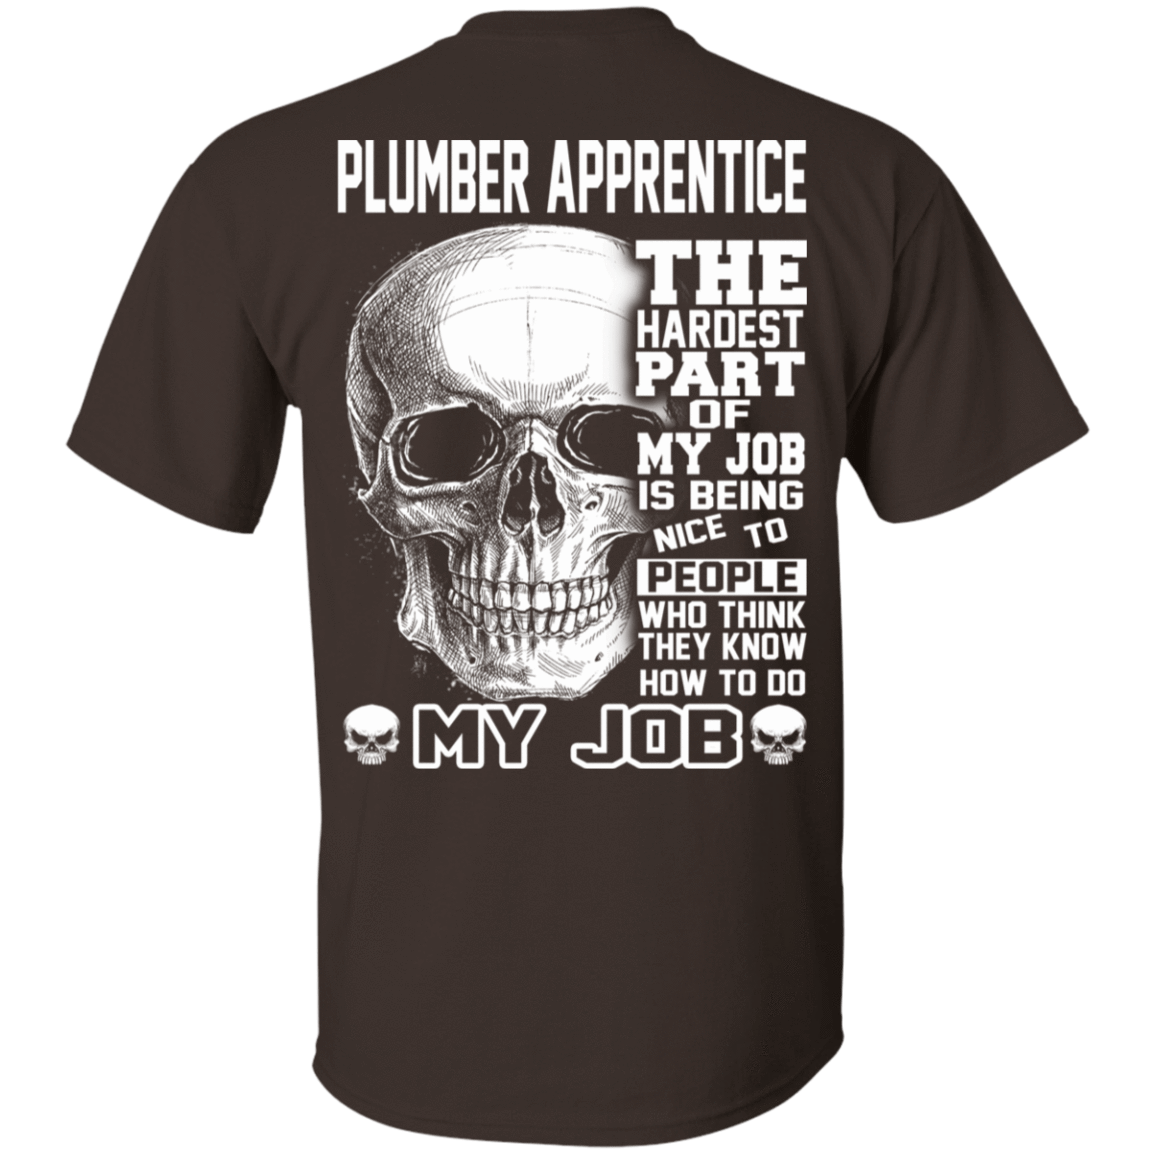 Plumber Apprentice The Hardest Part Of My Job 22-2283-72369945-12087 - Tee Ript